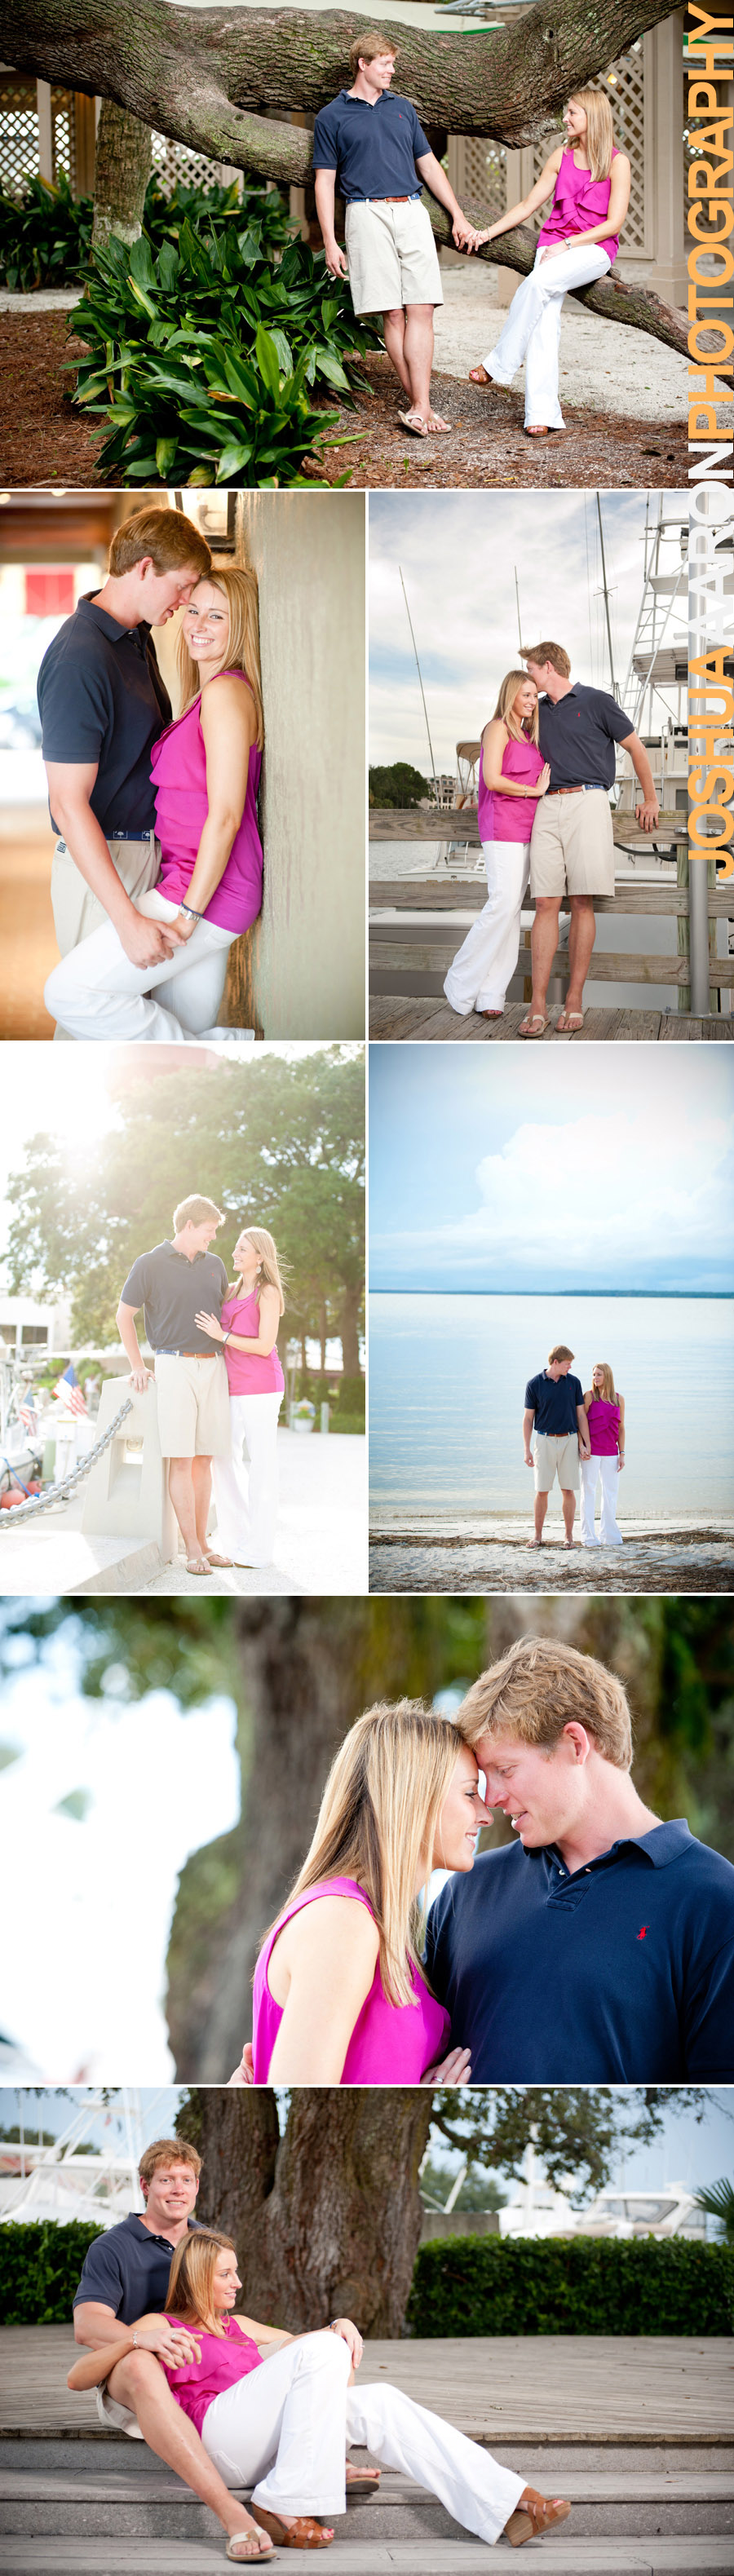 Engagement session in Harbor Town